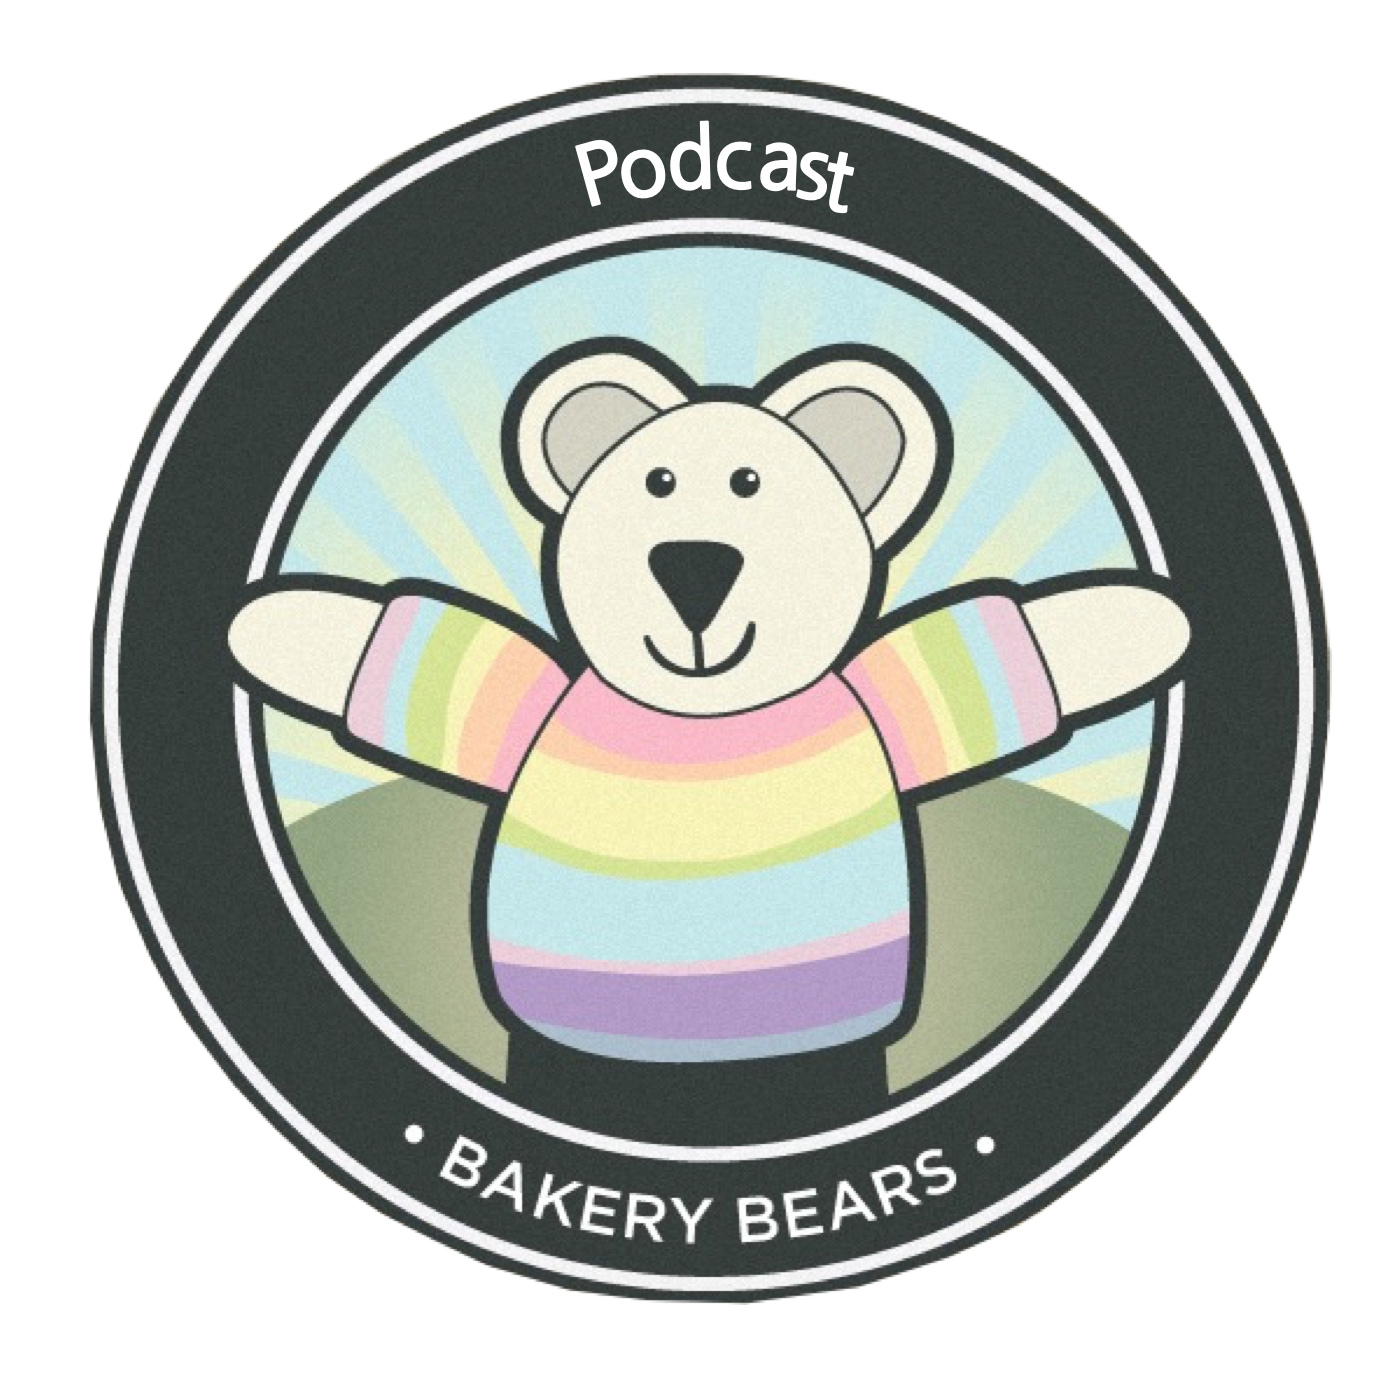 The Bakery Bears Podcast